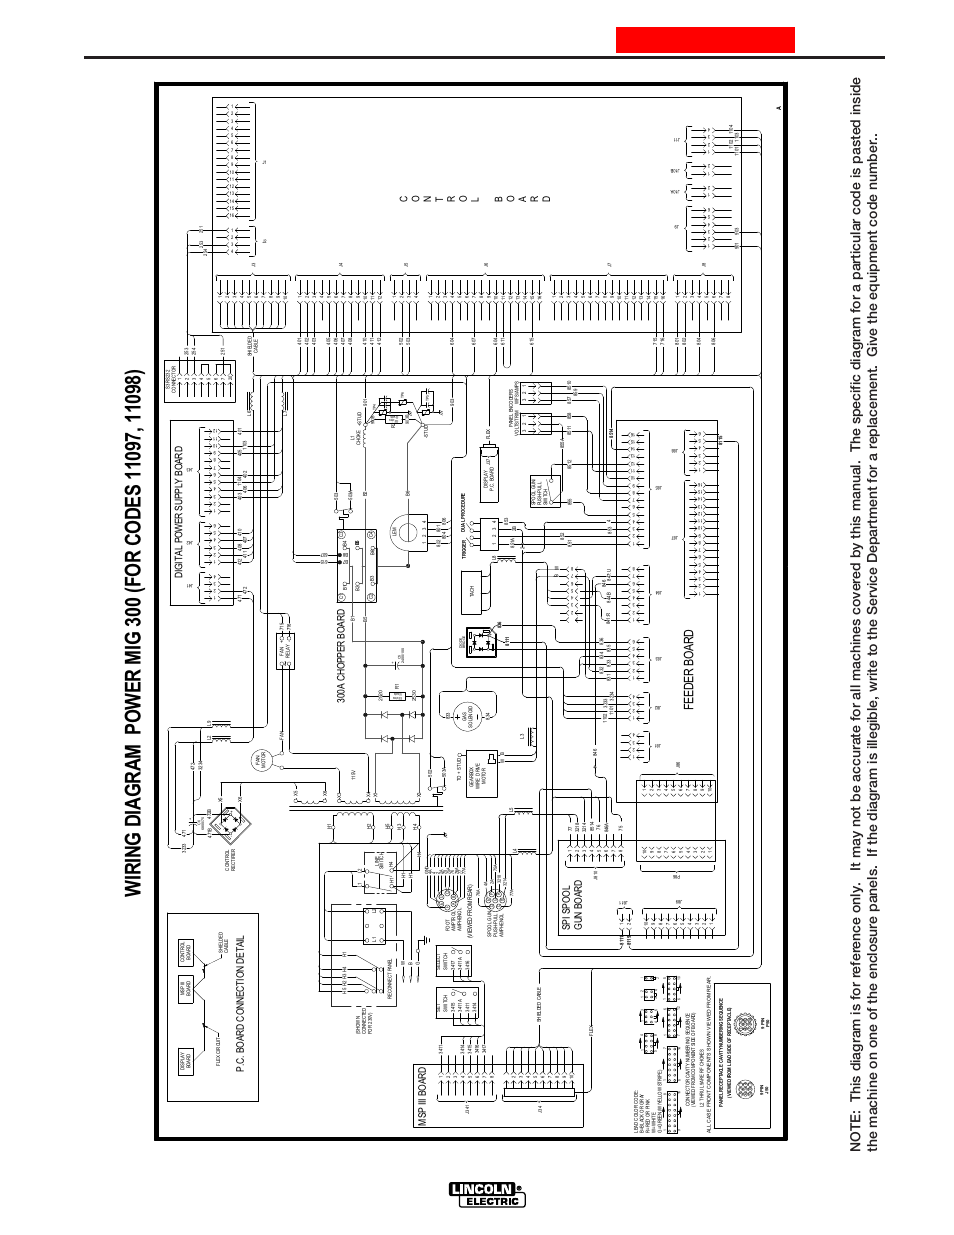 wiring diagram power mig 300 g4511 lincoln electric im736 power rh manualsdir com